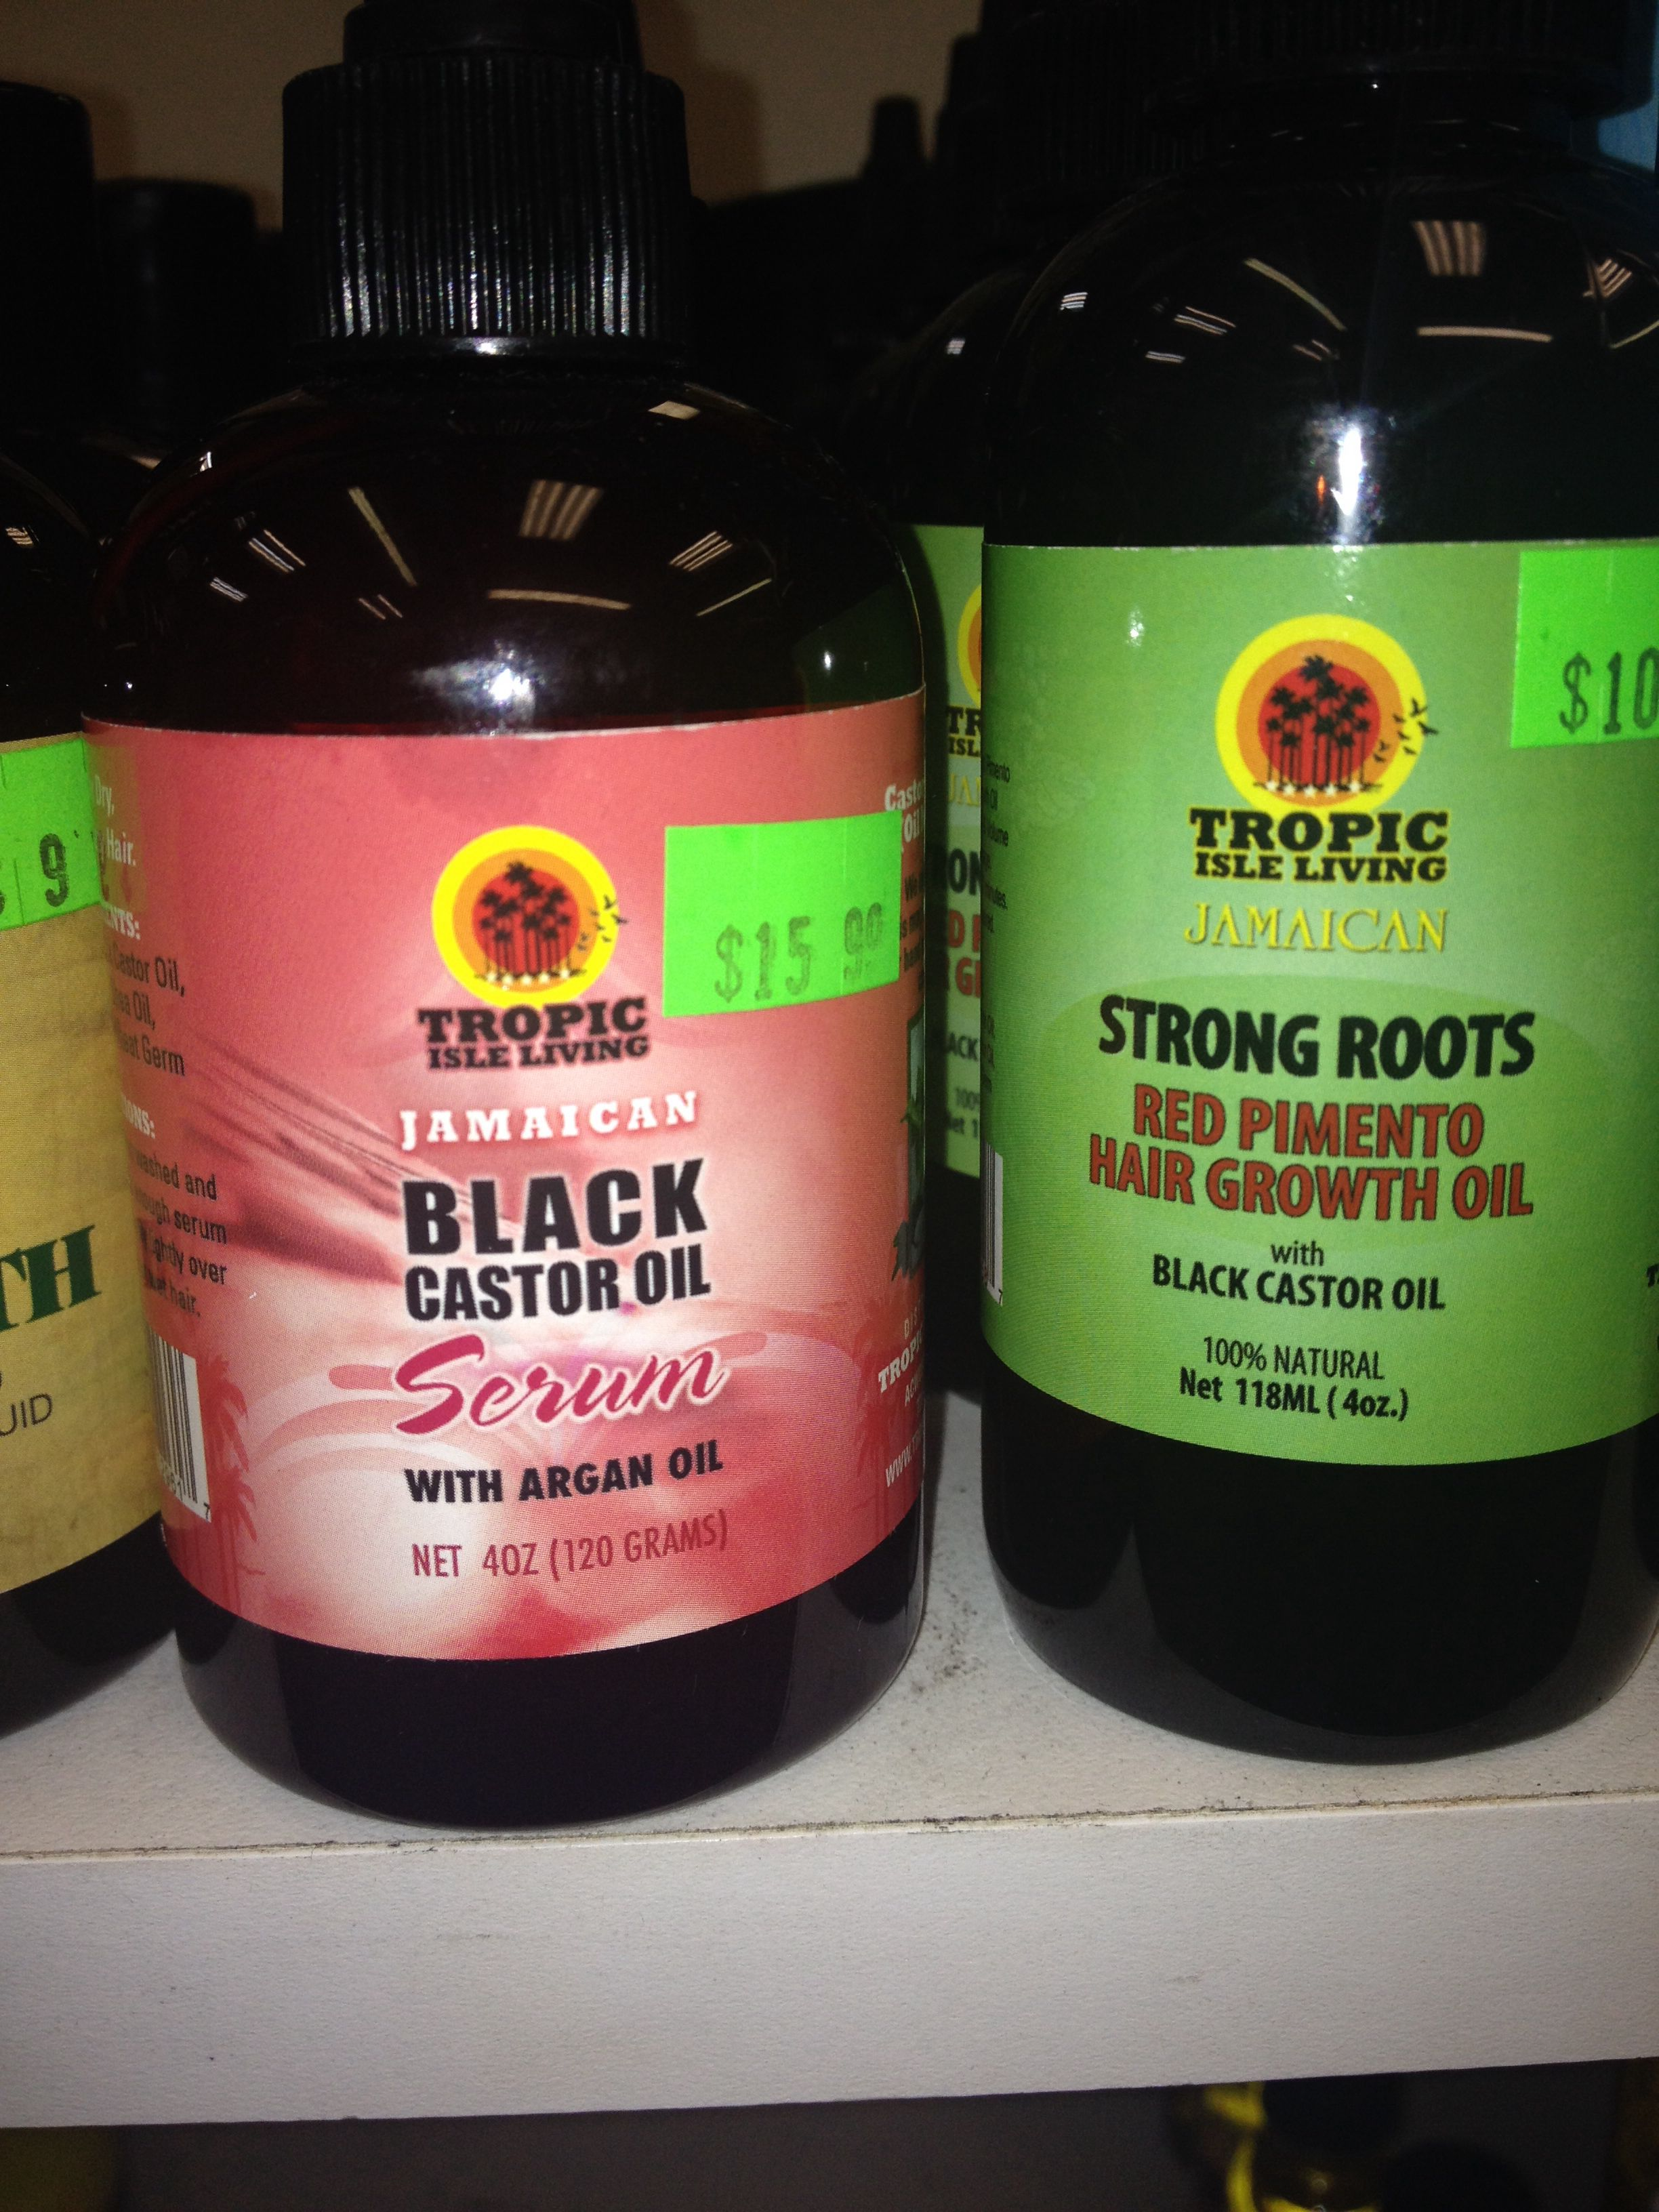 This is the castor oil i use twice a week for super fast hair growth